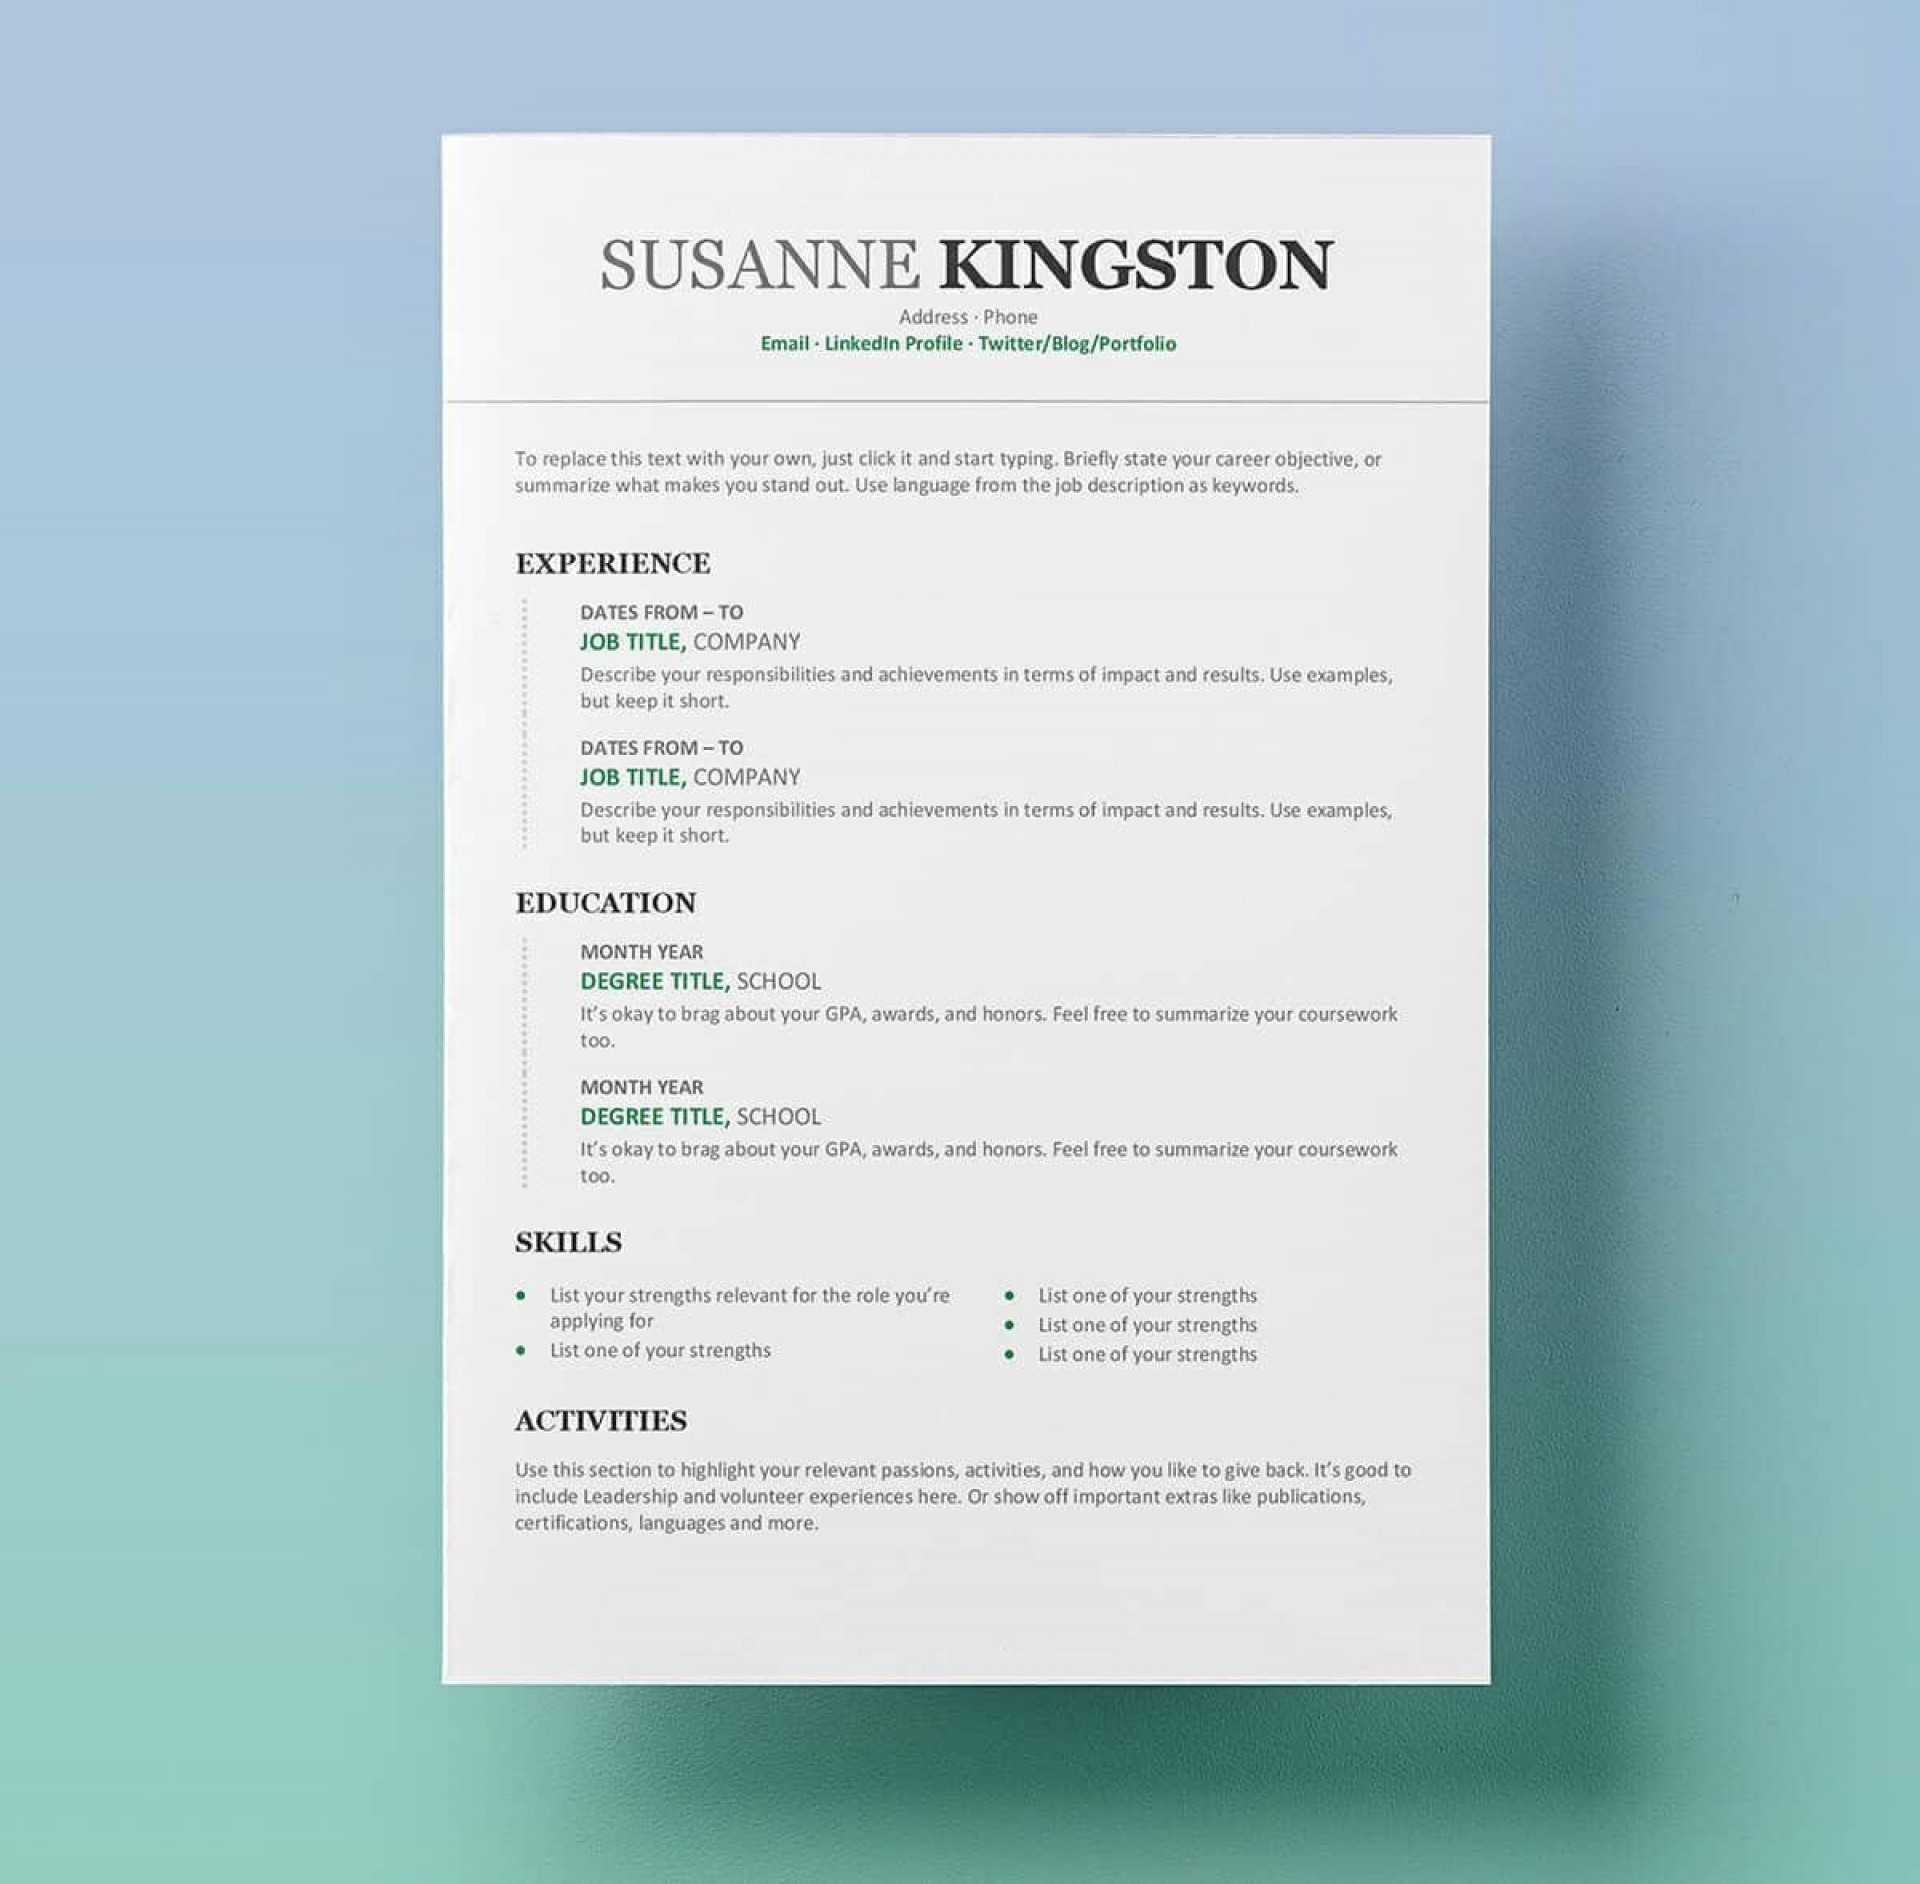 008 Formidable Free Microsoft Word Resume Template Concept  Templates Modern For Download1920